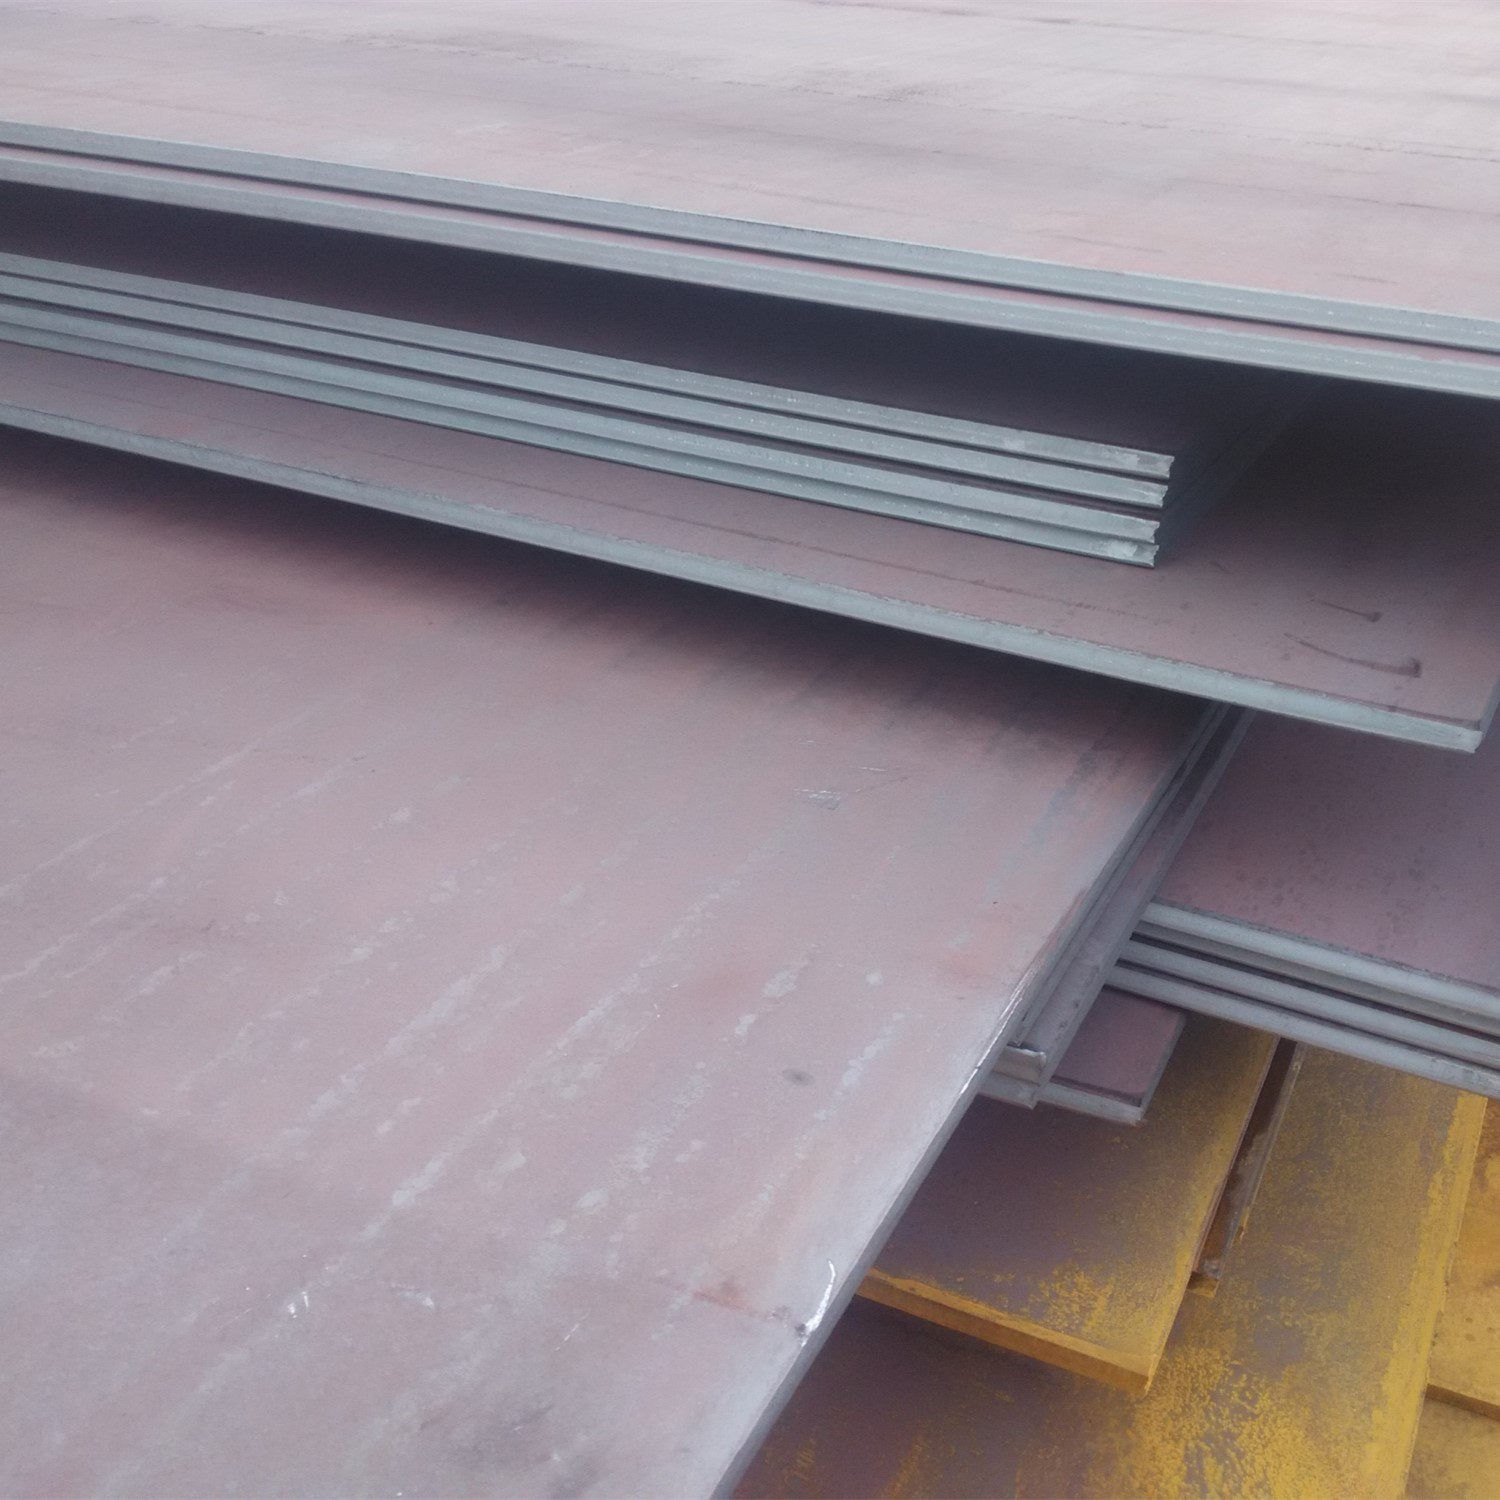 Abrasion resistant, wear-resistant steel plates Featured Image